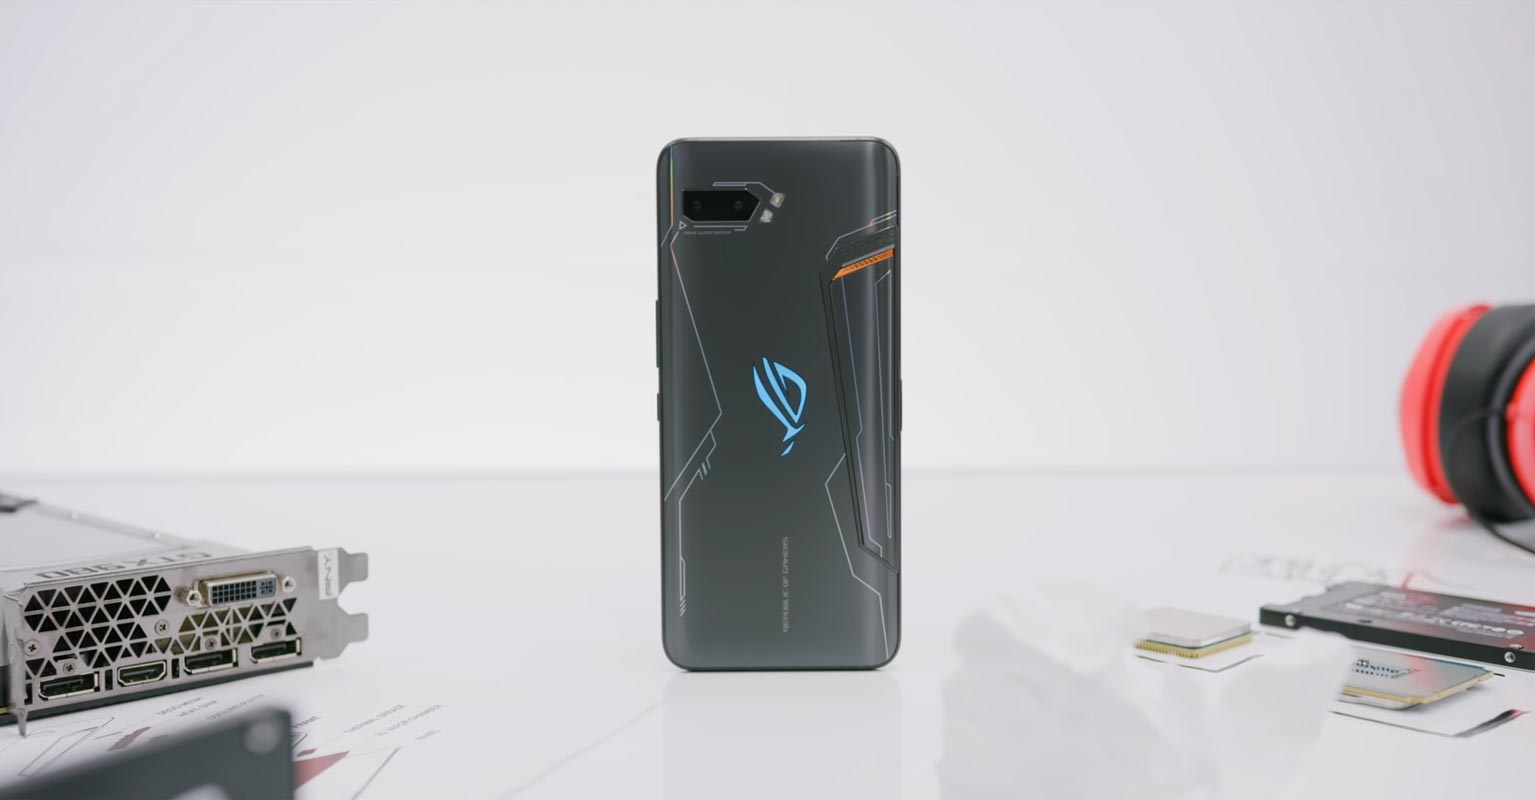 Asus ROG Phone 2 With Computer Graphics Card